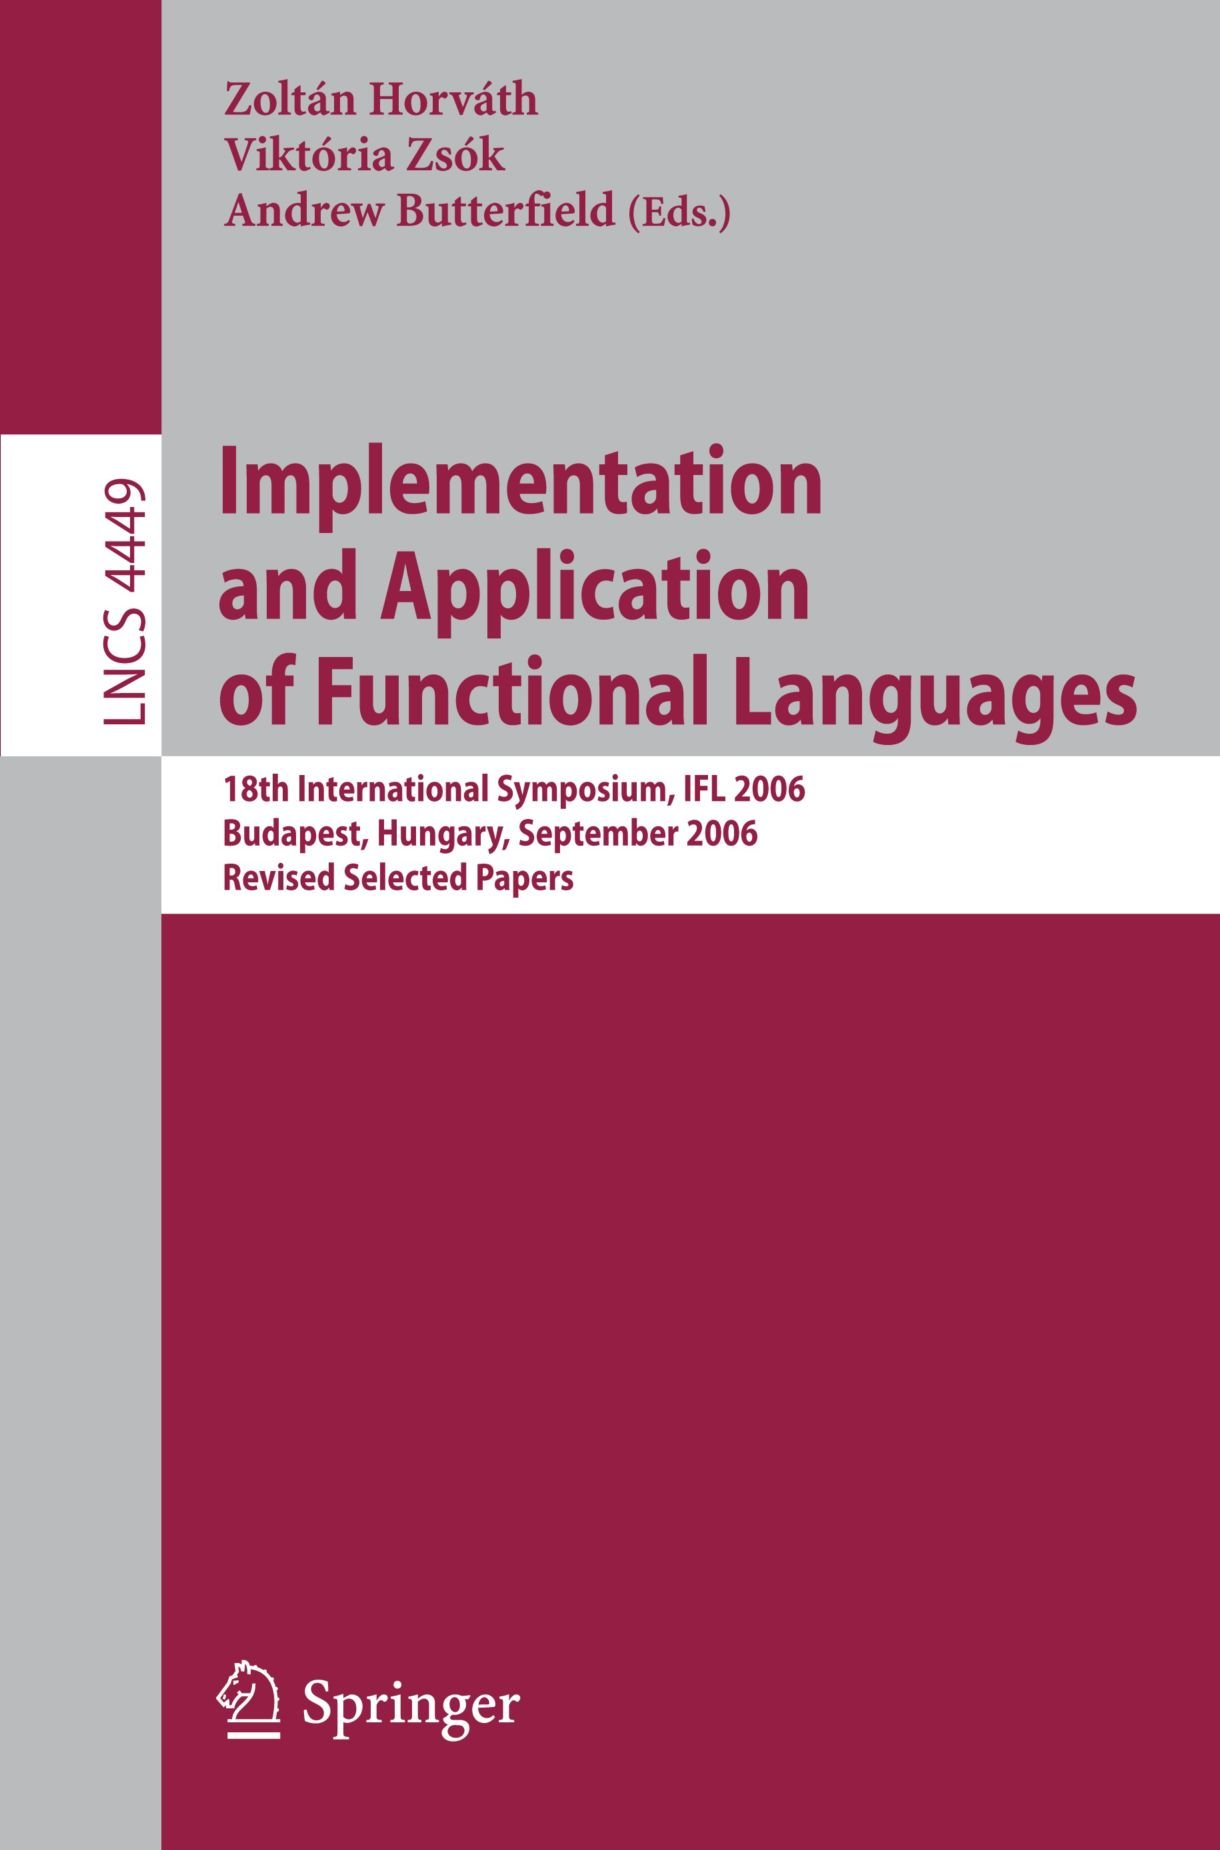 Implementation and Application of Functional Languages: 18th International Symposium, IFL 2006, Budapest, Hungary, September 4-6, 2006, Revised Selected Papers (Lecture Notes in Computer Science) by Brand: Springer